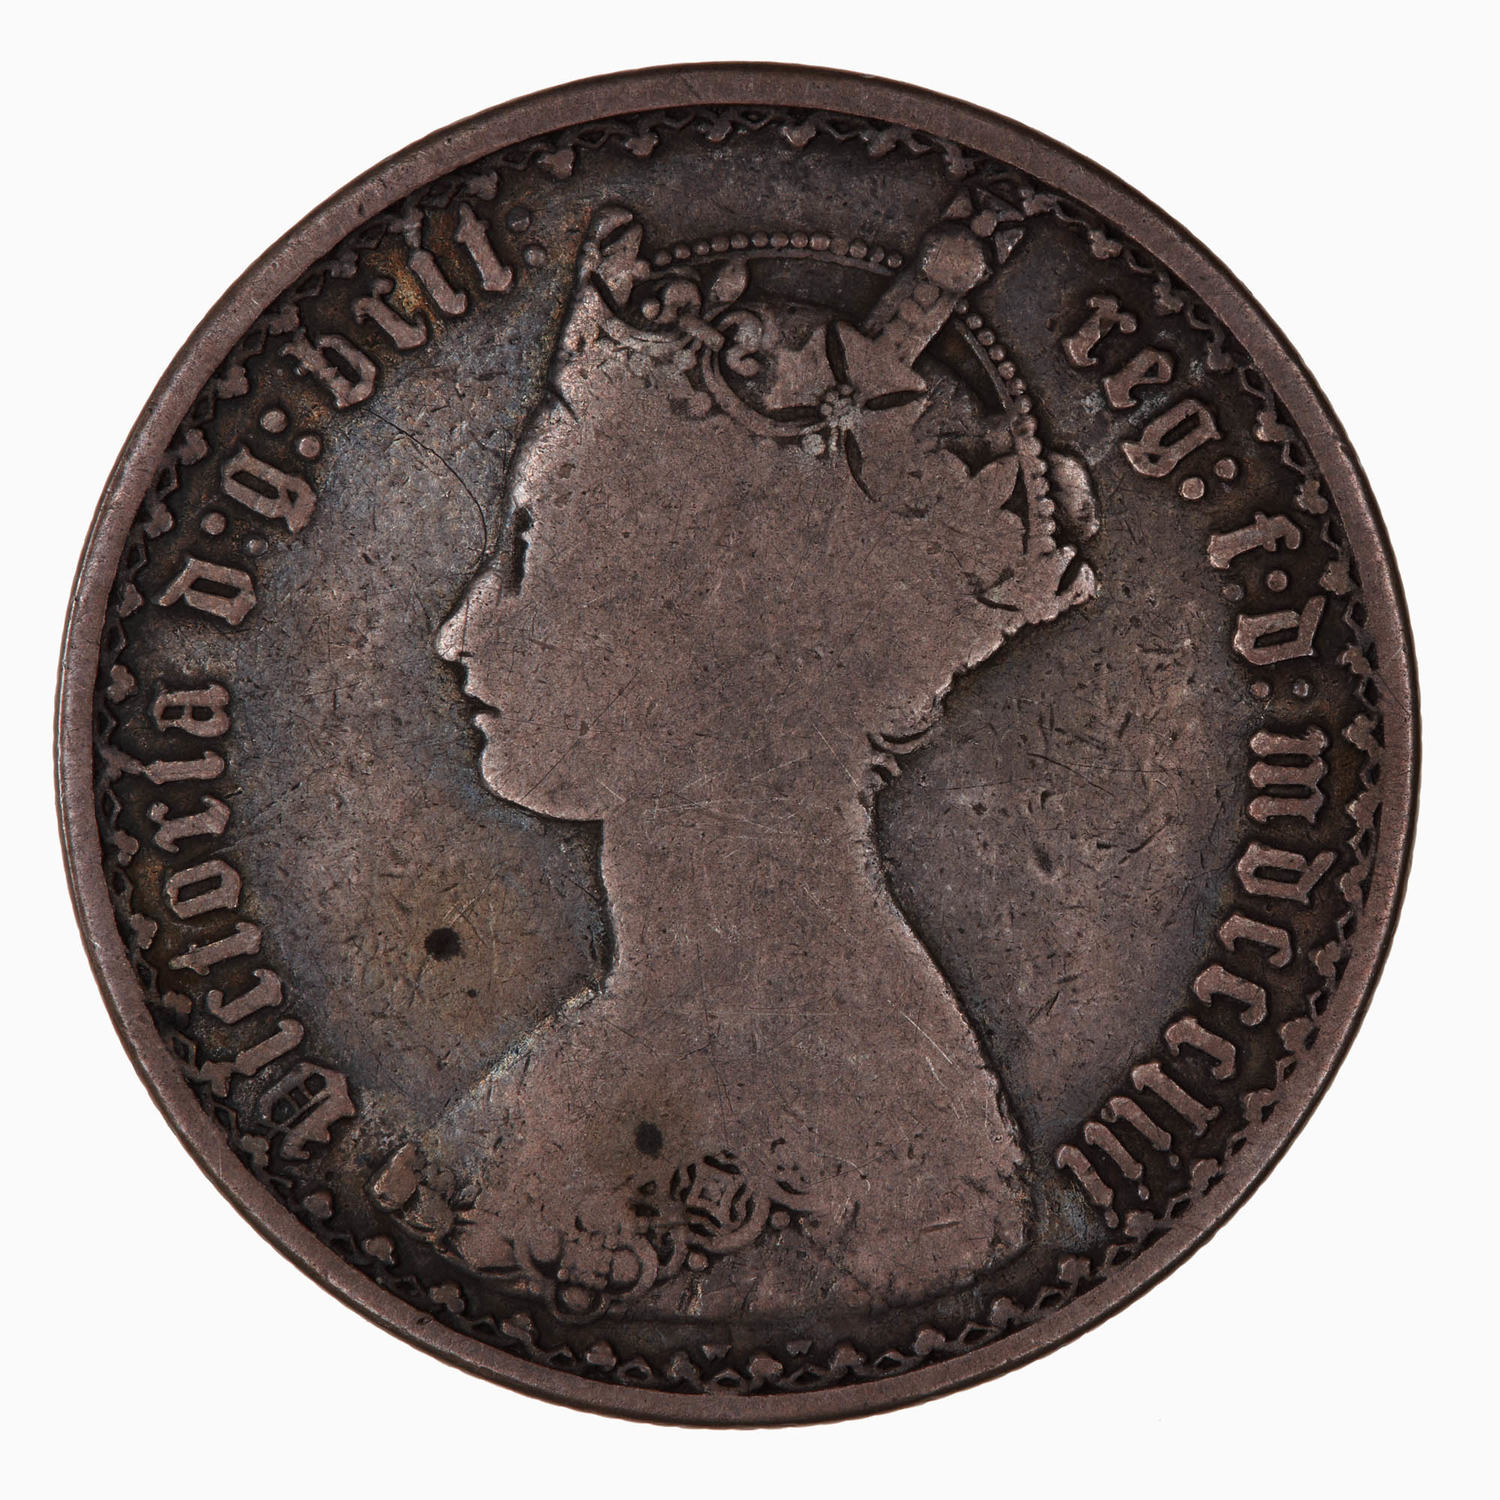 Florin 1853: Photo Coin - Florin, Queen Victoria, Great Britain, 1853